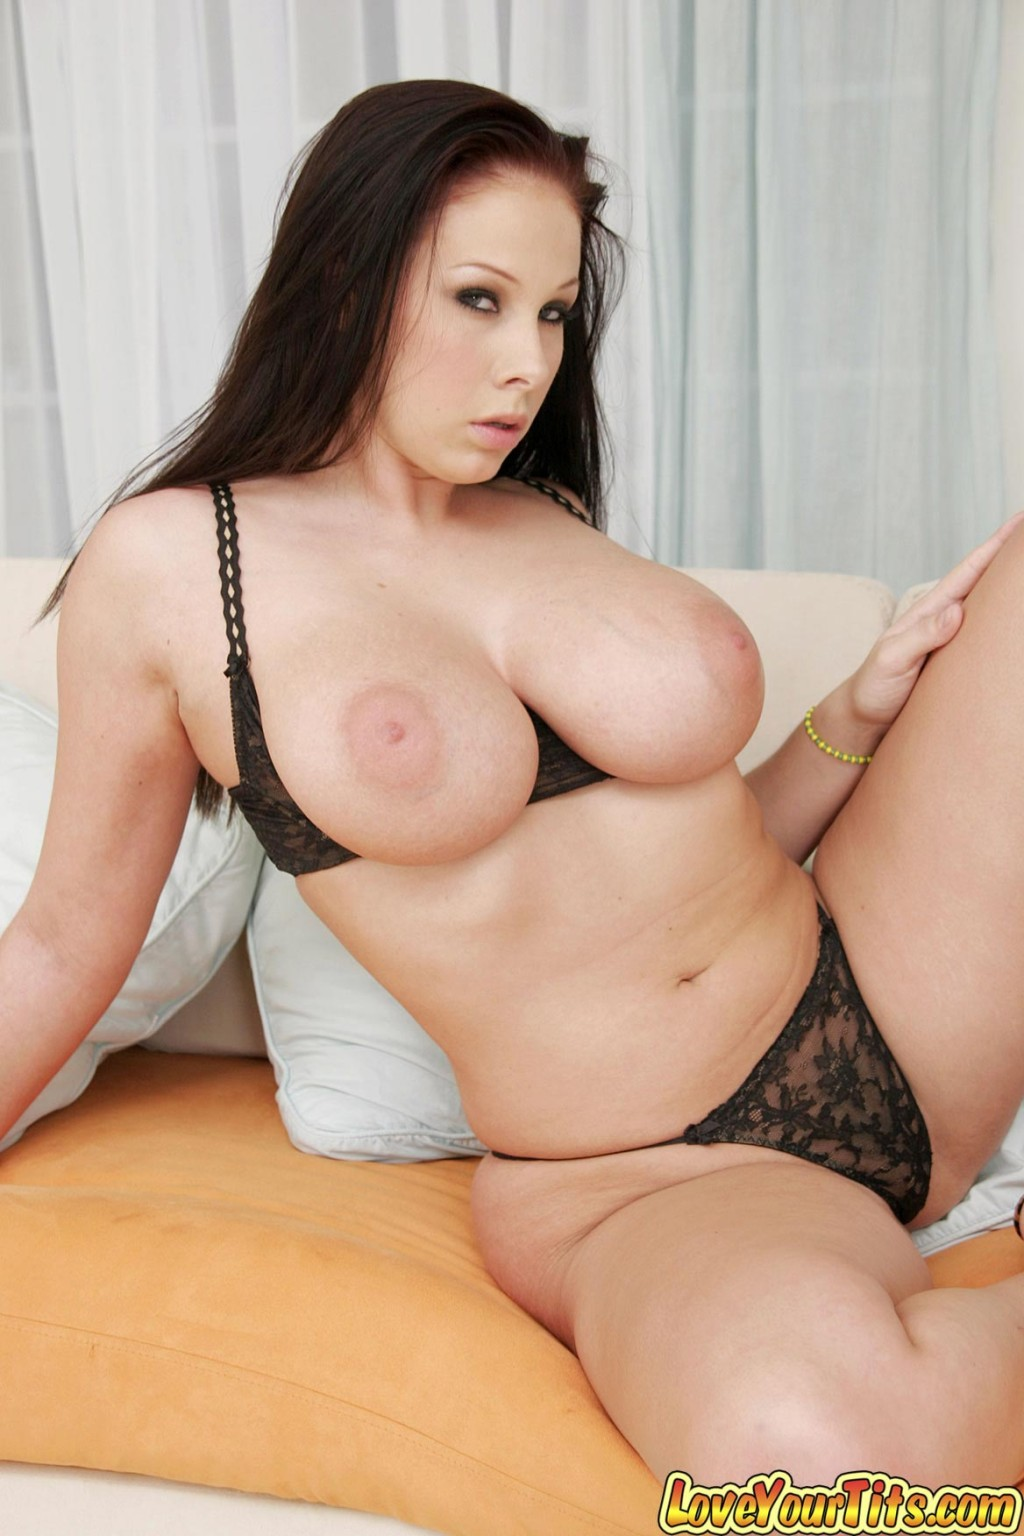 Gianna Michaels Nude Photos Naked Hot Sexy Images Sex Xxx Porn Pics